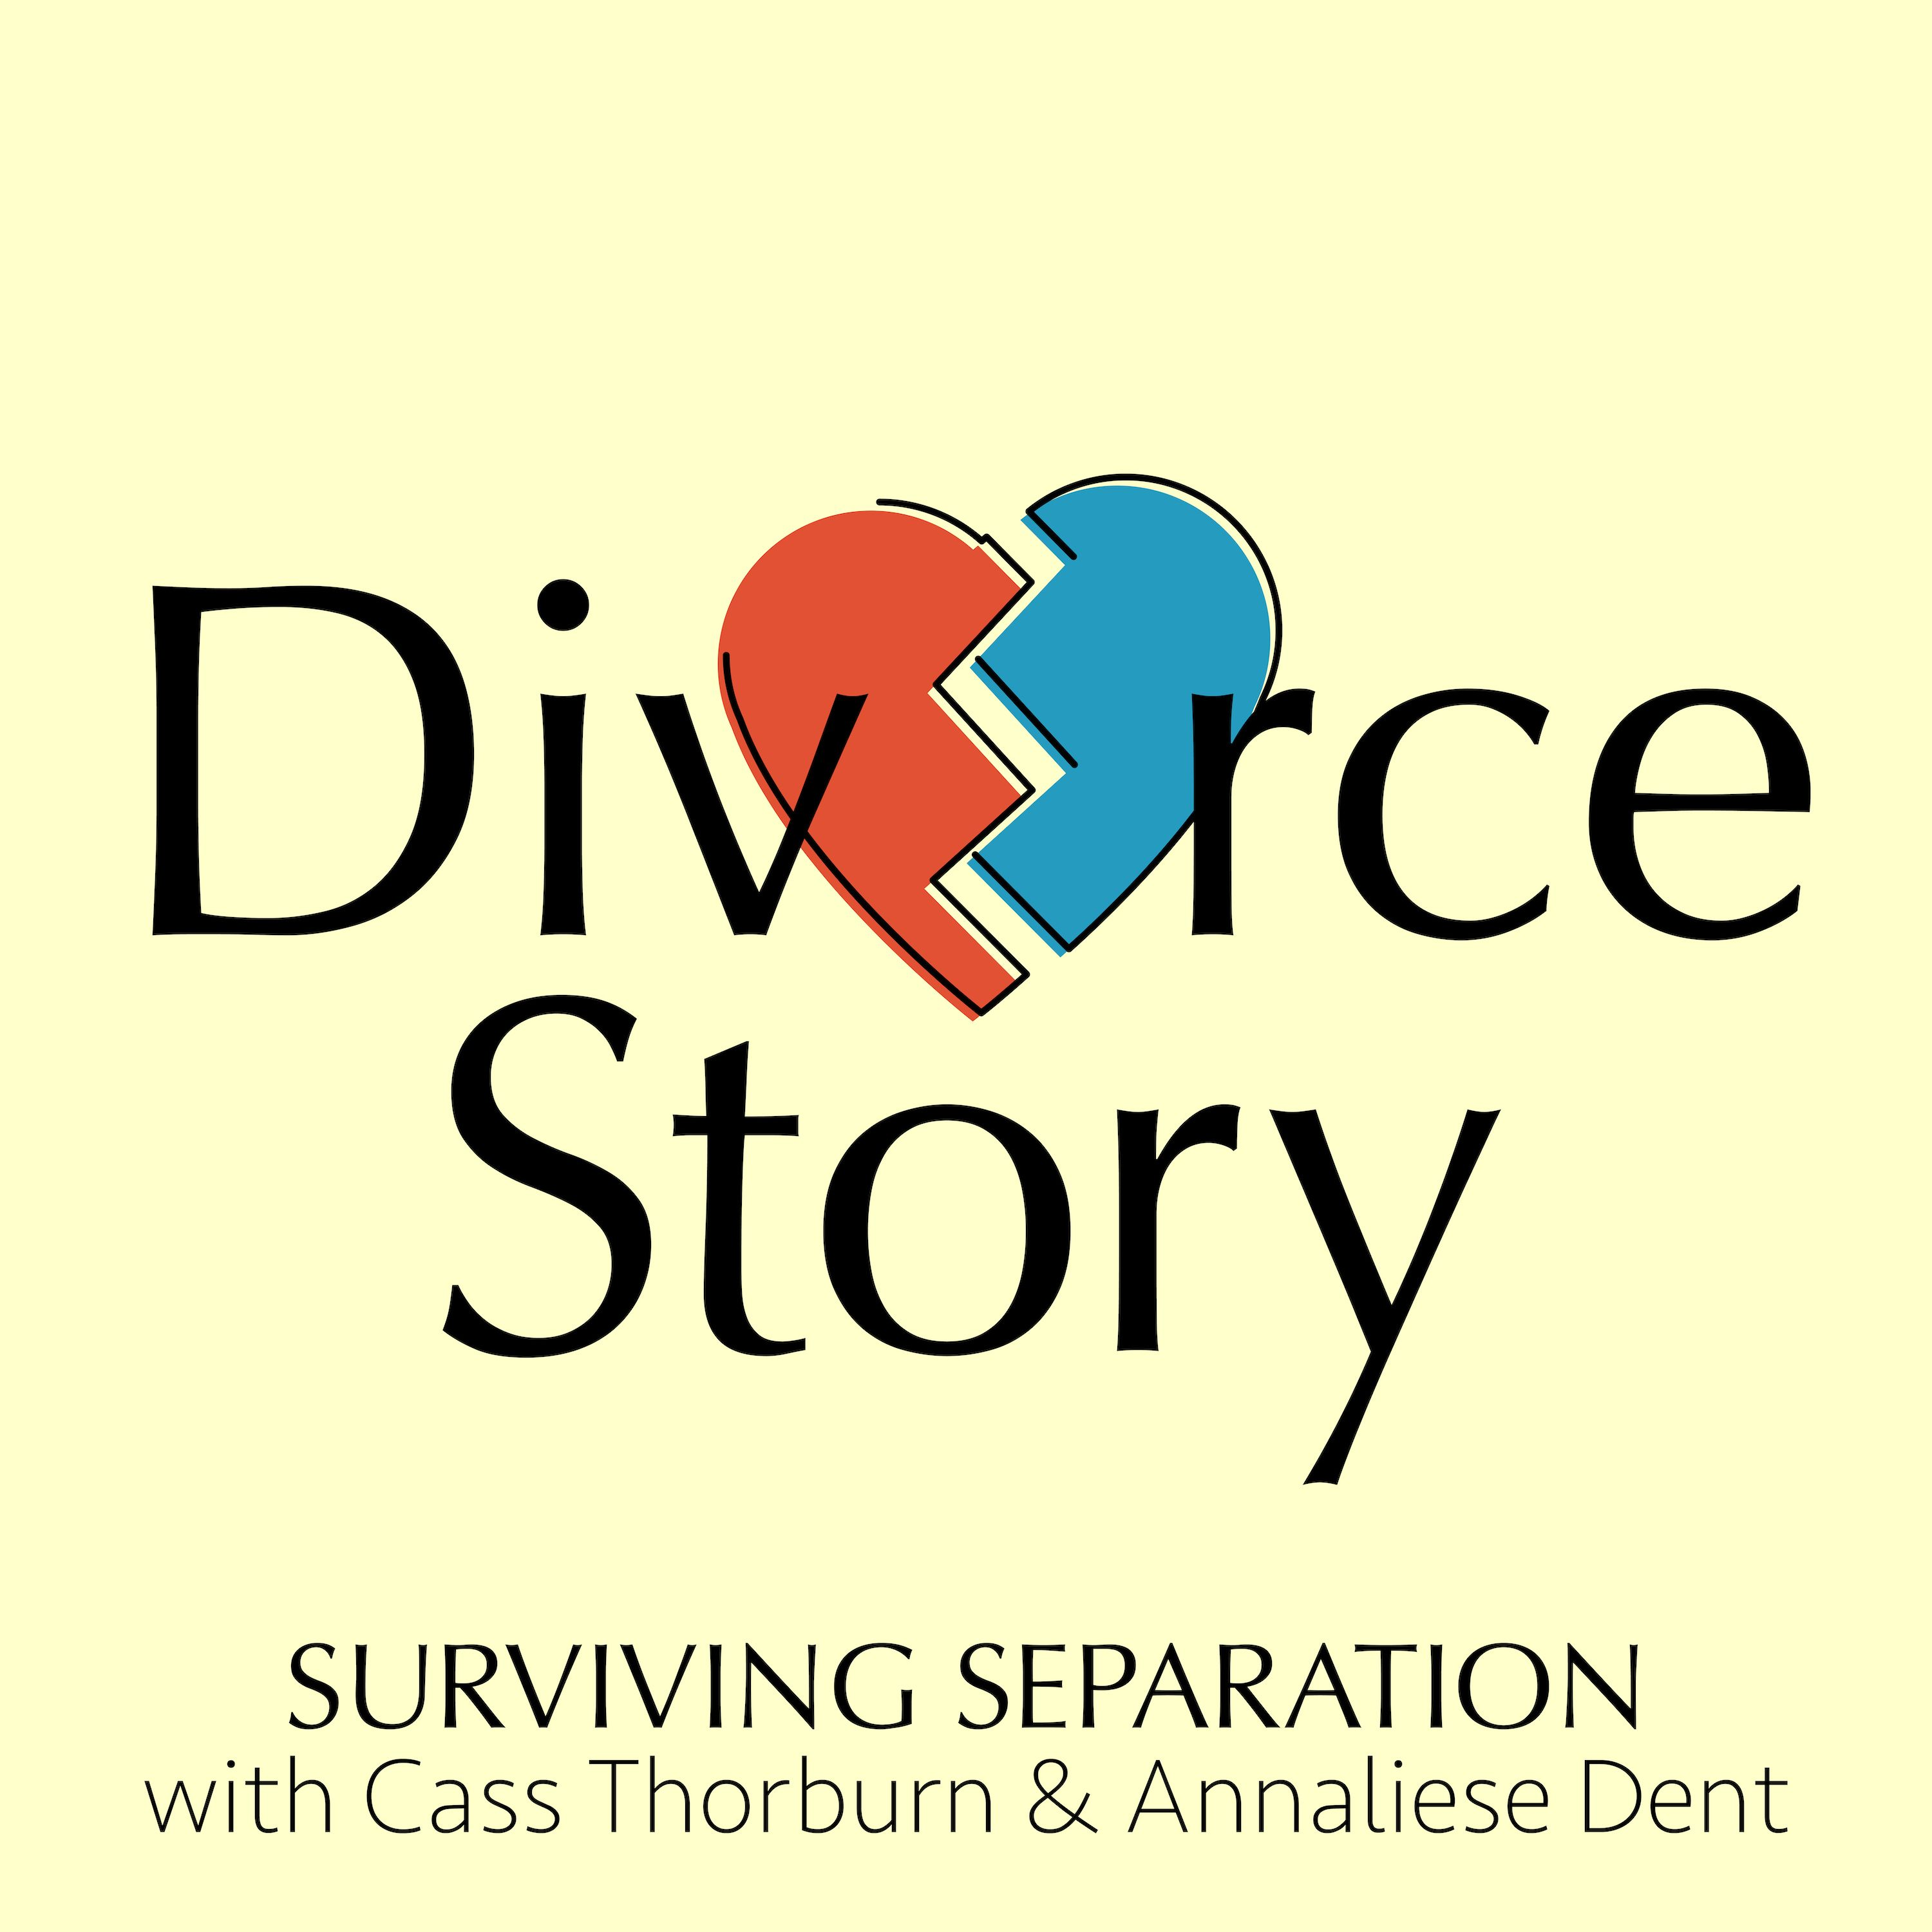 Divorce Story - How to tell people about your separation